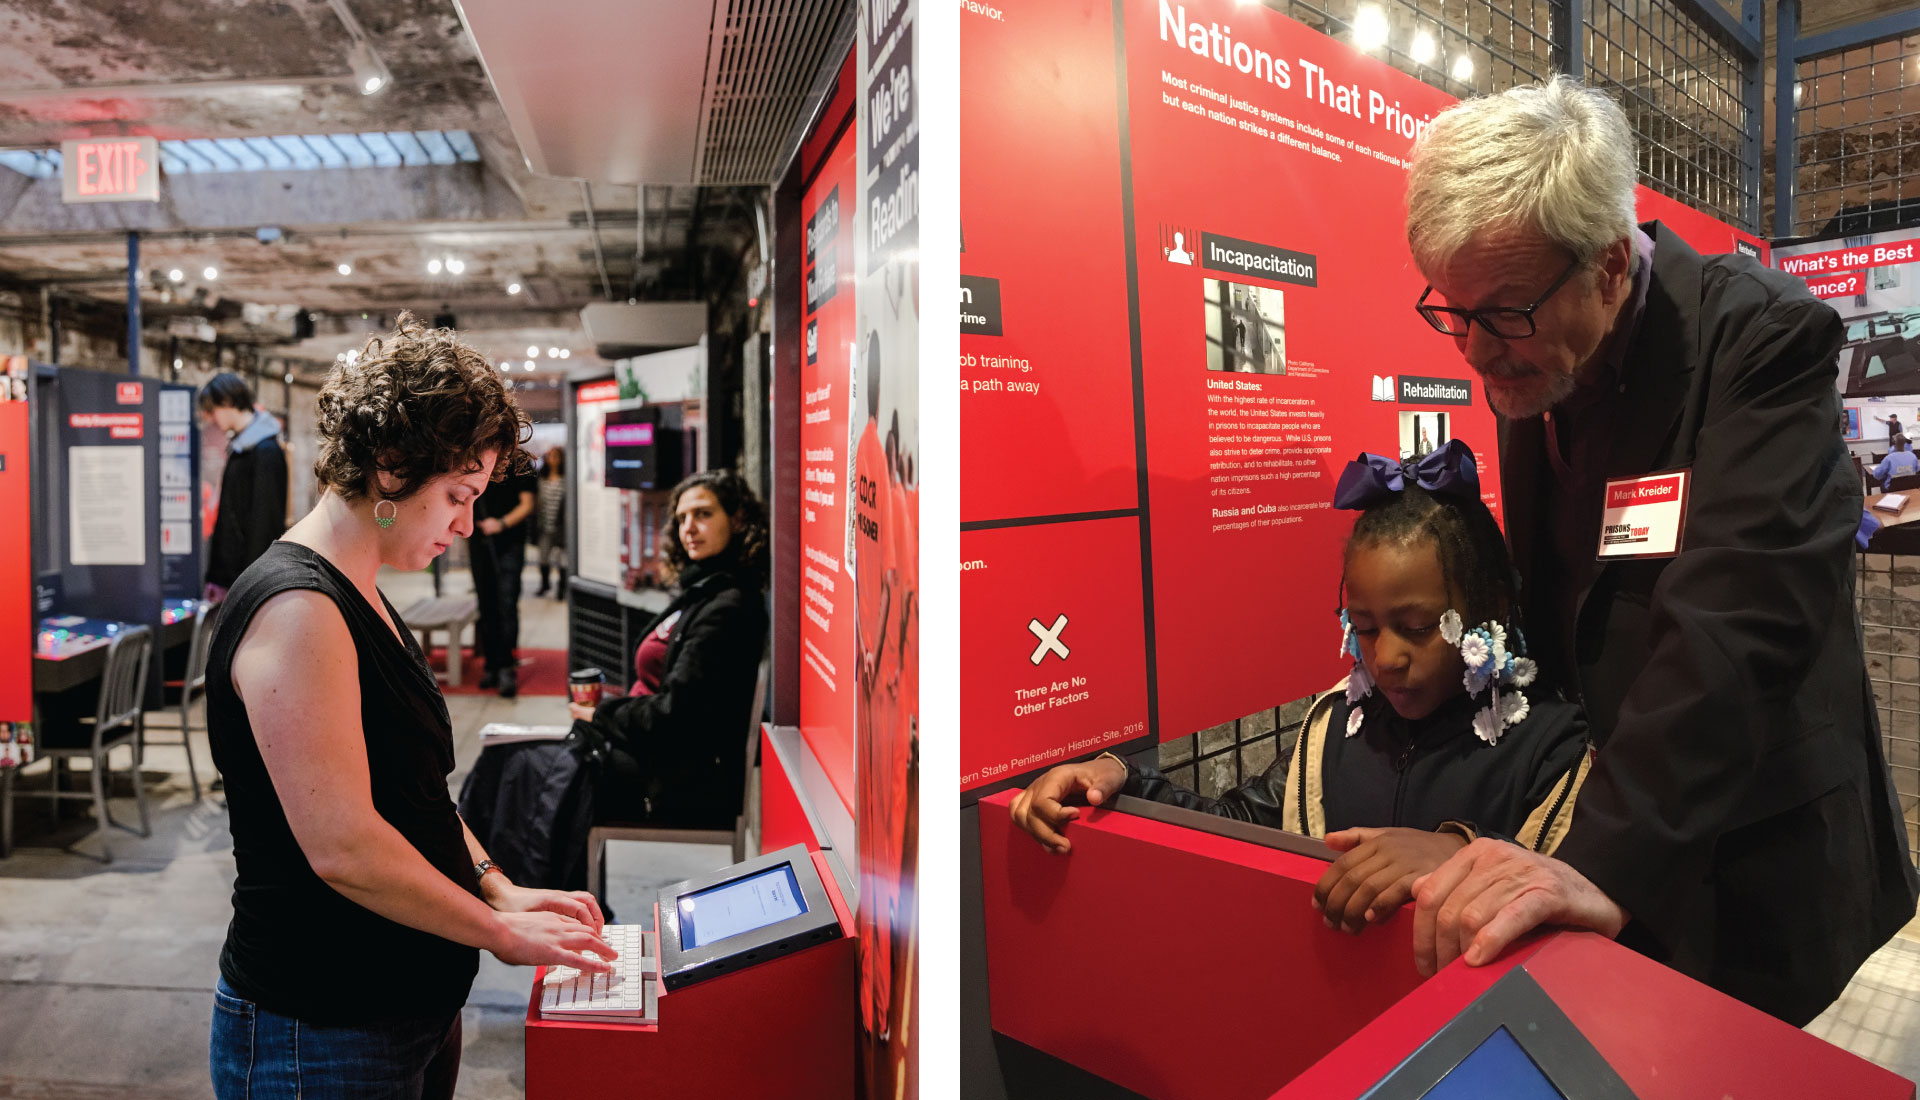 Two images, side by side. On the left, a woman filling out her digital postcard on a touch screen. On the right, a young girl and older man work together to learn about the prison system on a touch screen, out of view.